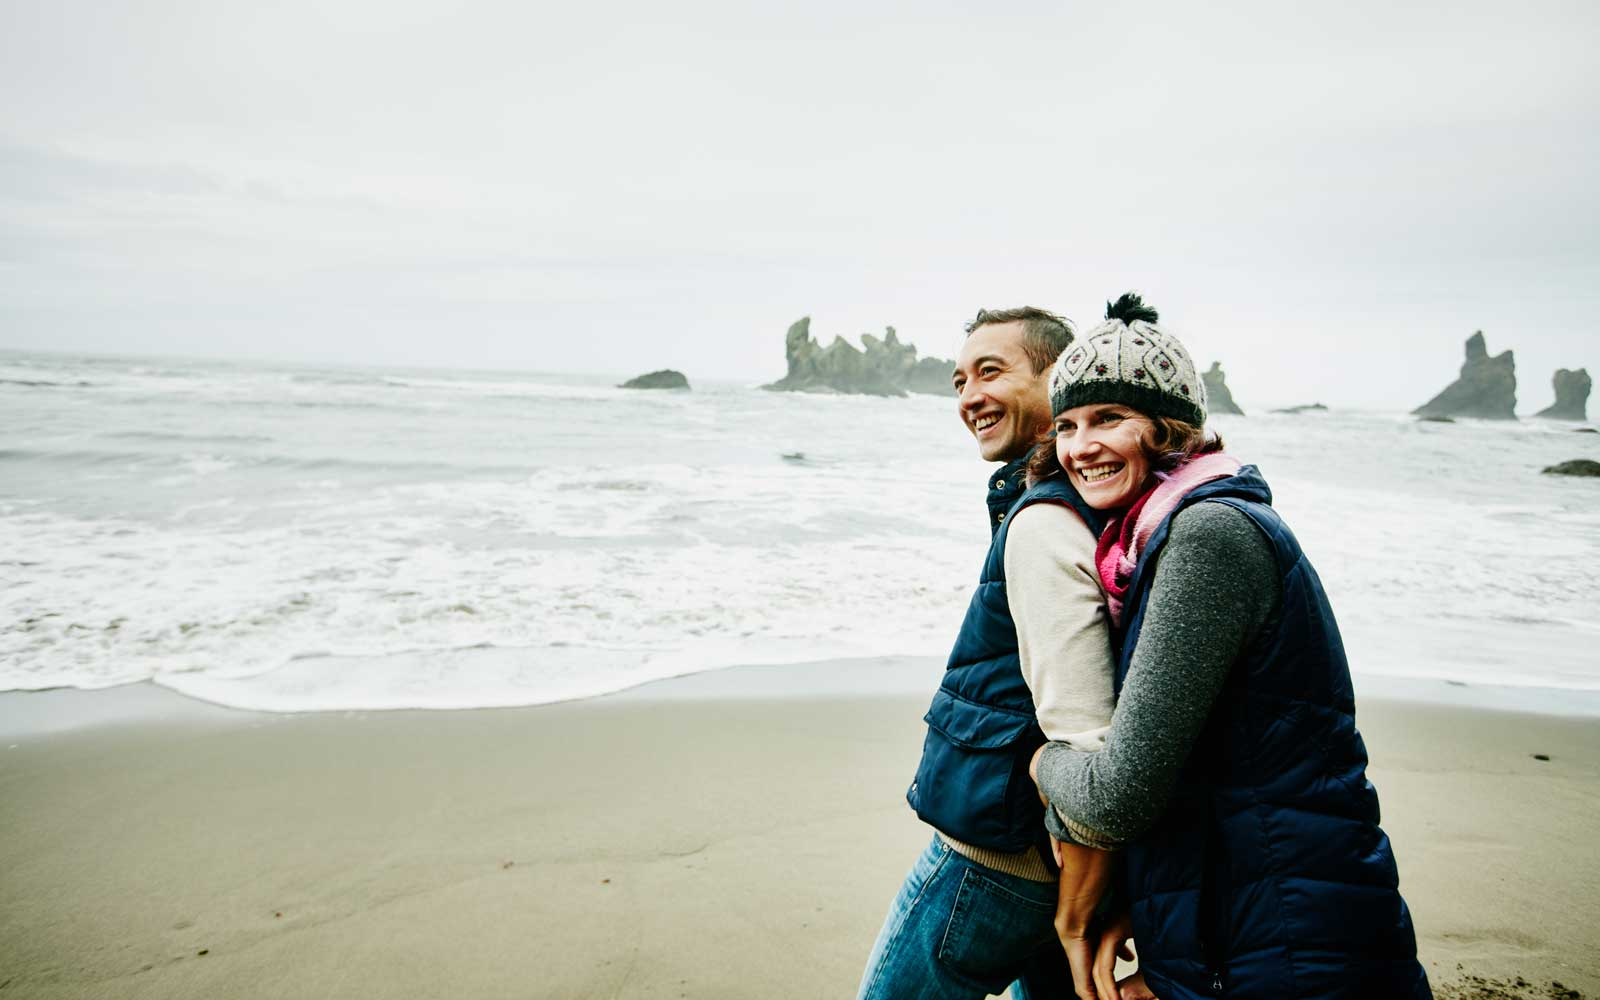 Couple enjoying time on the beach during winter